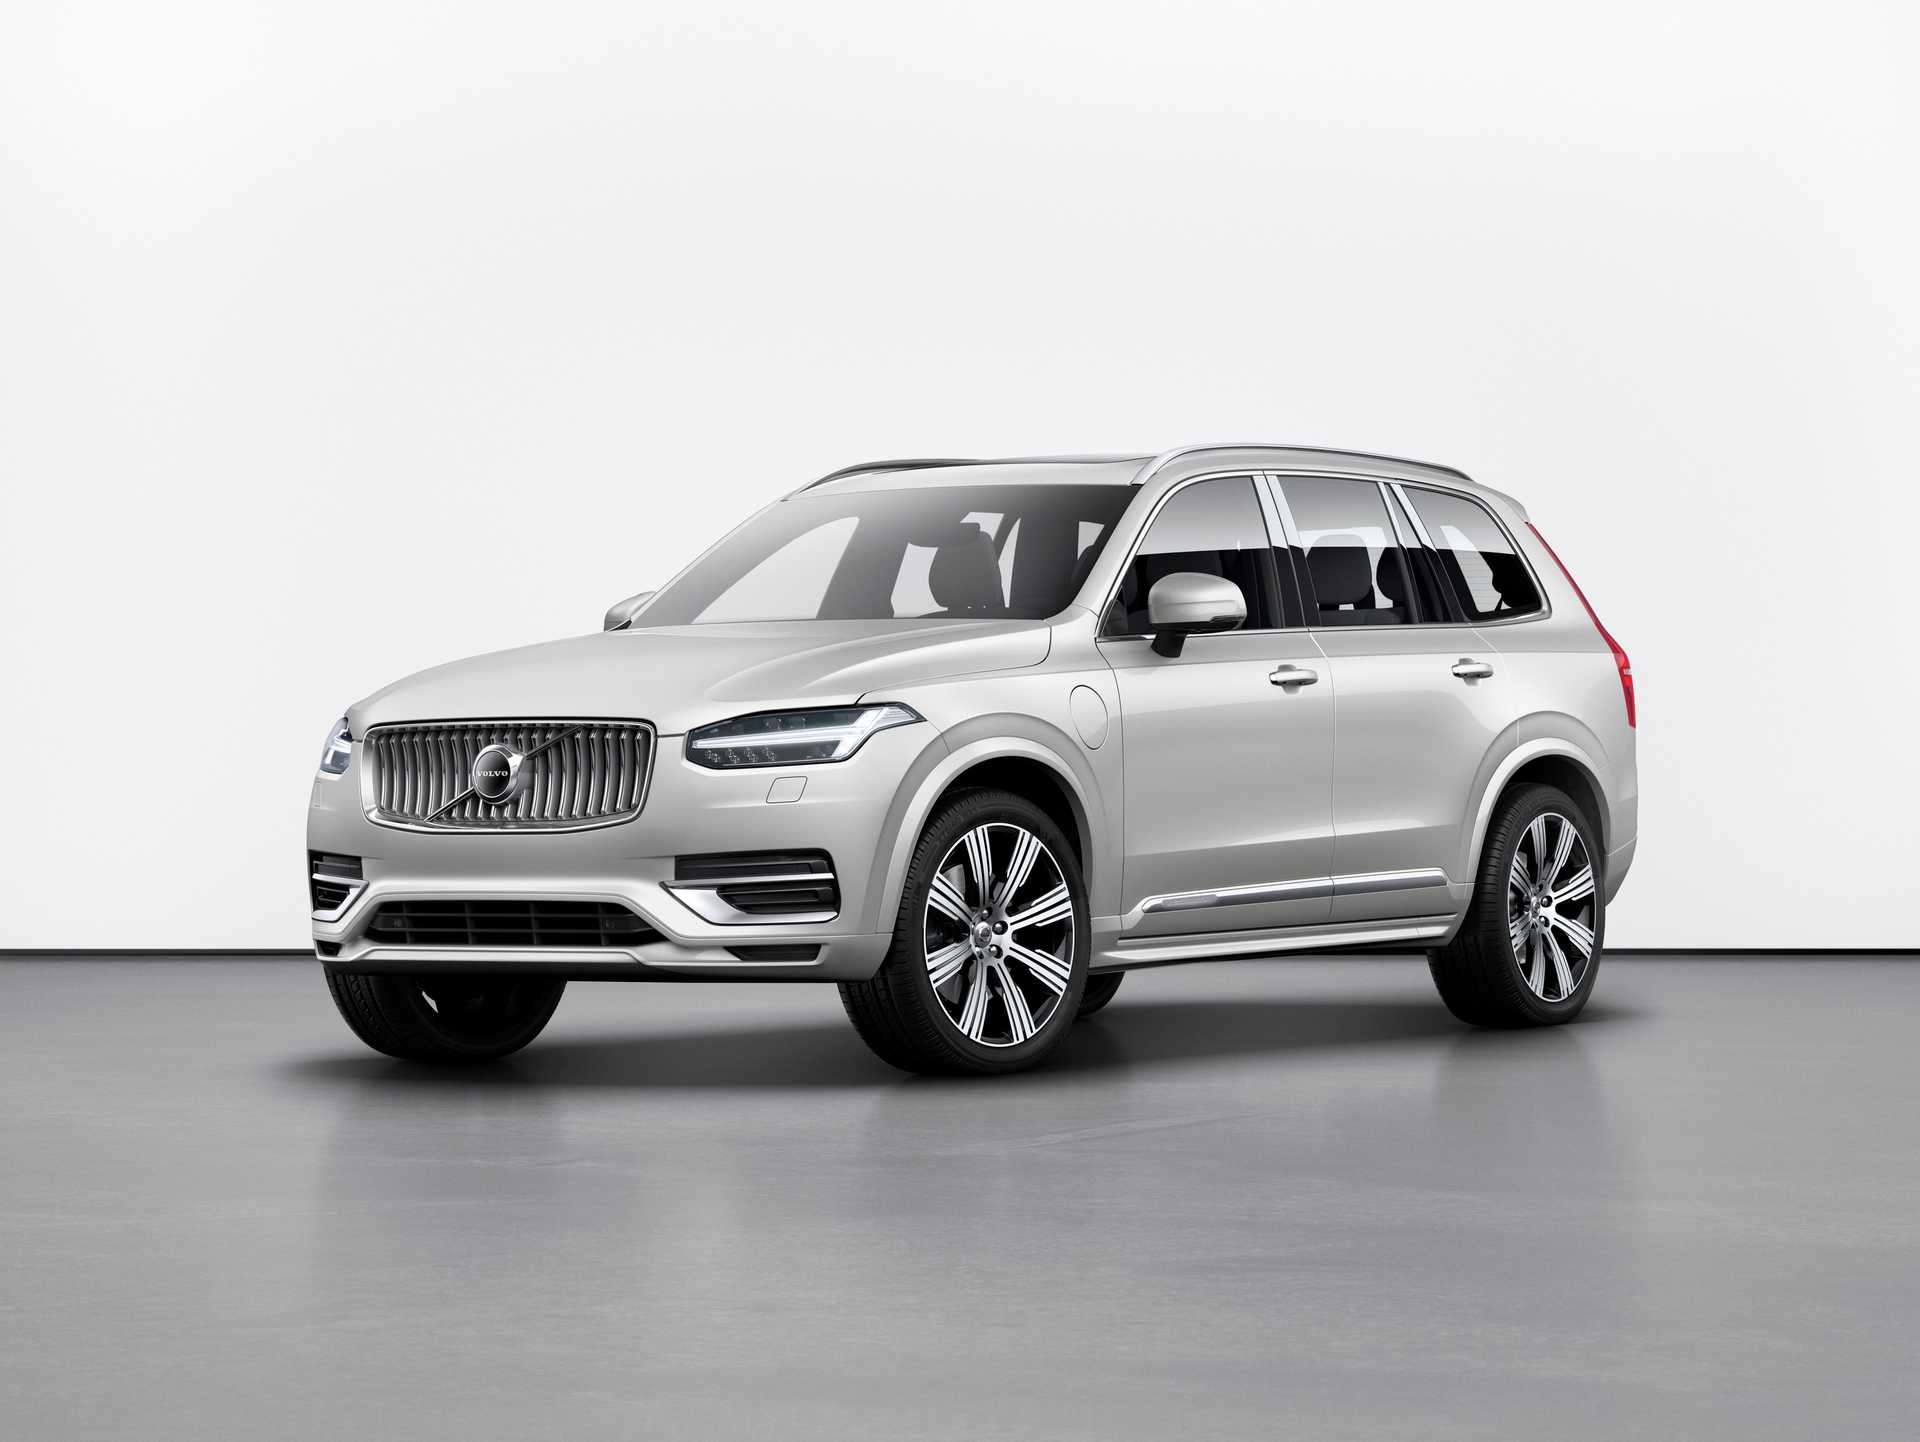 Awd Cars For Sale >> Volvo XC90 B5 AWD Geartronic, 235hp, 2020